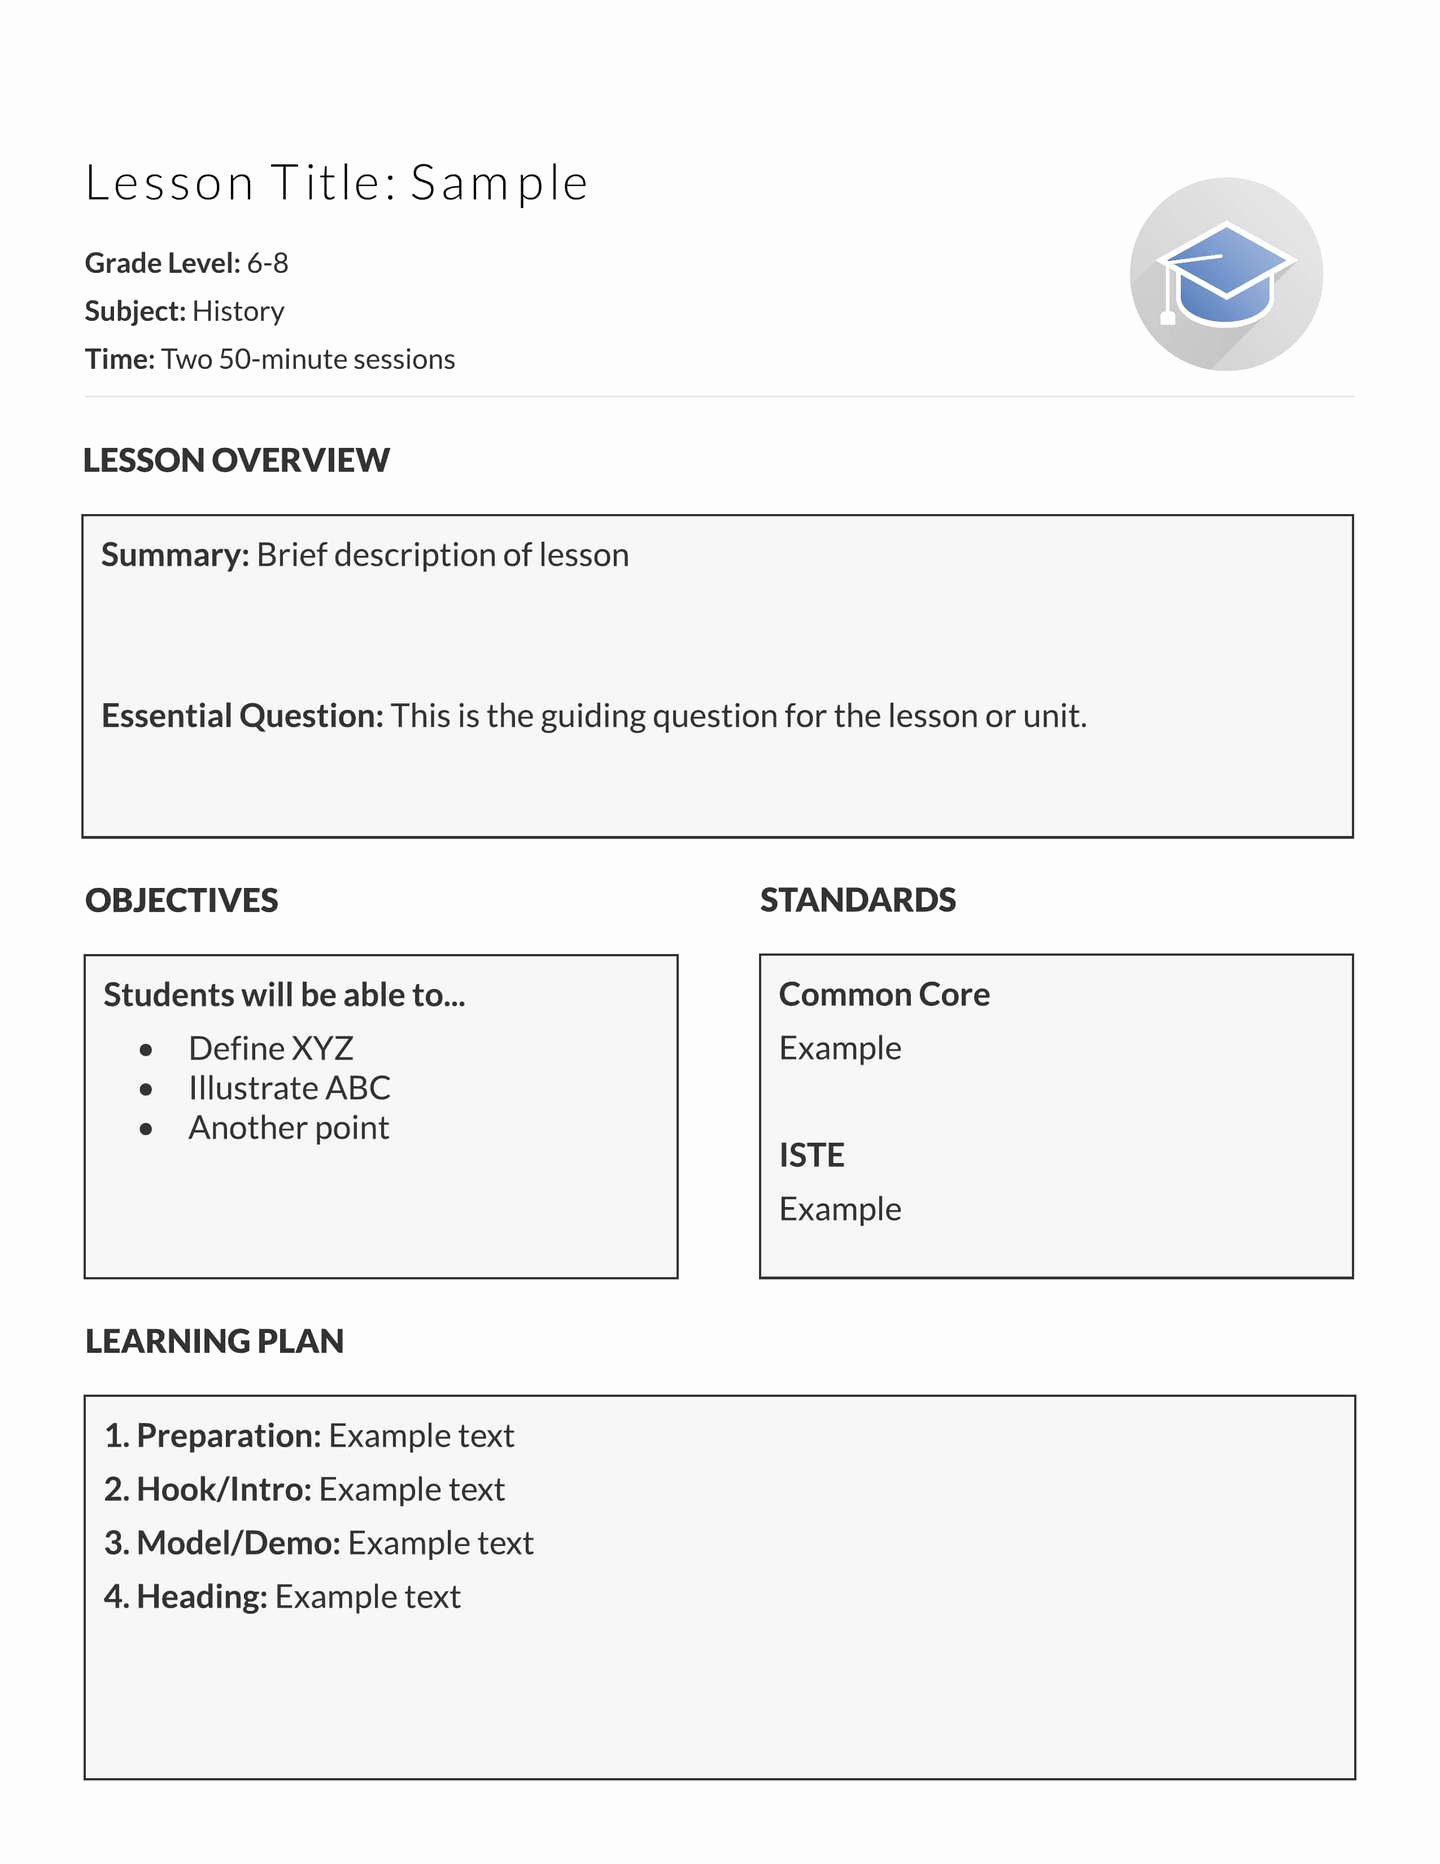 Simple Lesson Plan Template Fresh 5 Free Lesson Plan Templates & Examples Lucidpress